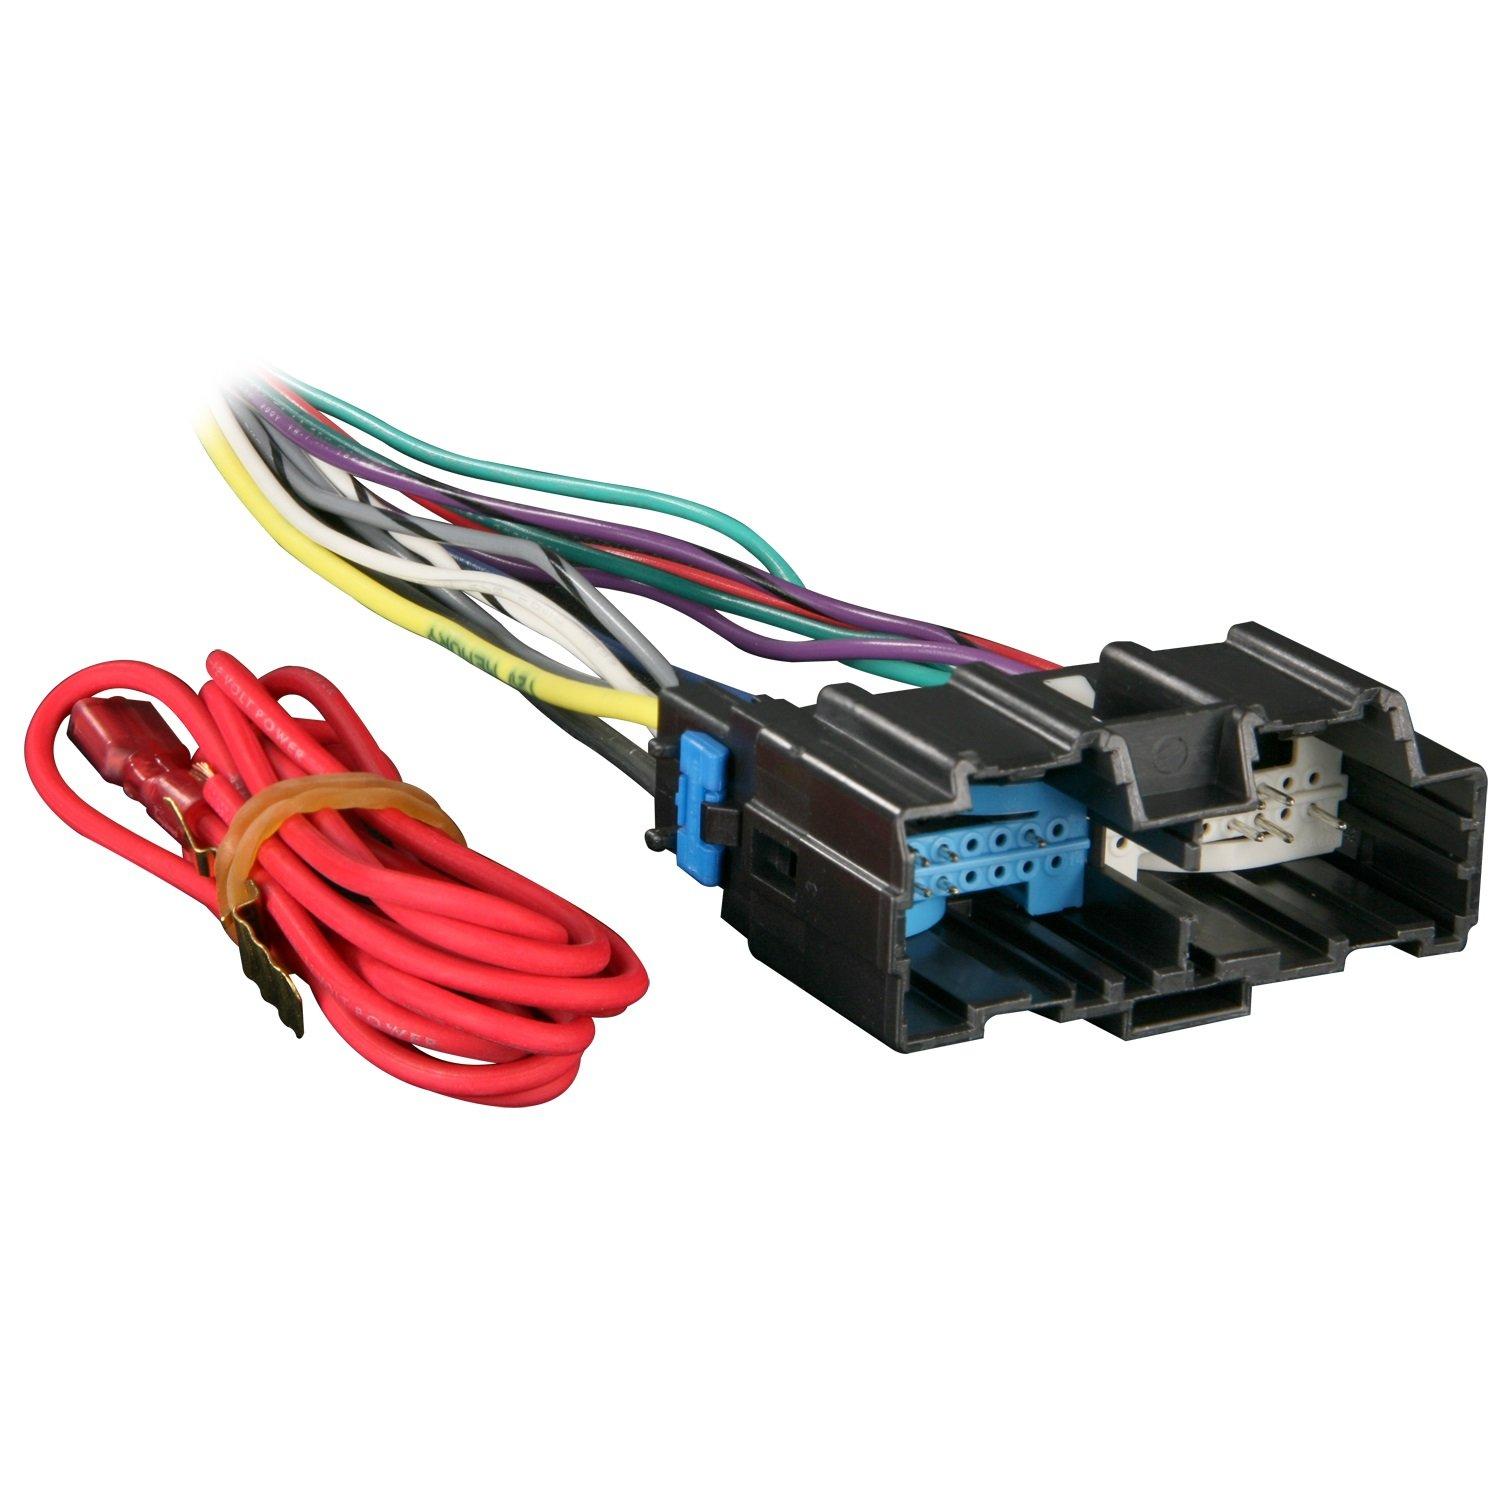 71ZzH dyg7L._SL1500_ amazon com metra 70 2105 radio wiring harness for impala monte radio wiring harness for 2004 chevy impala at edmiracle.co